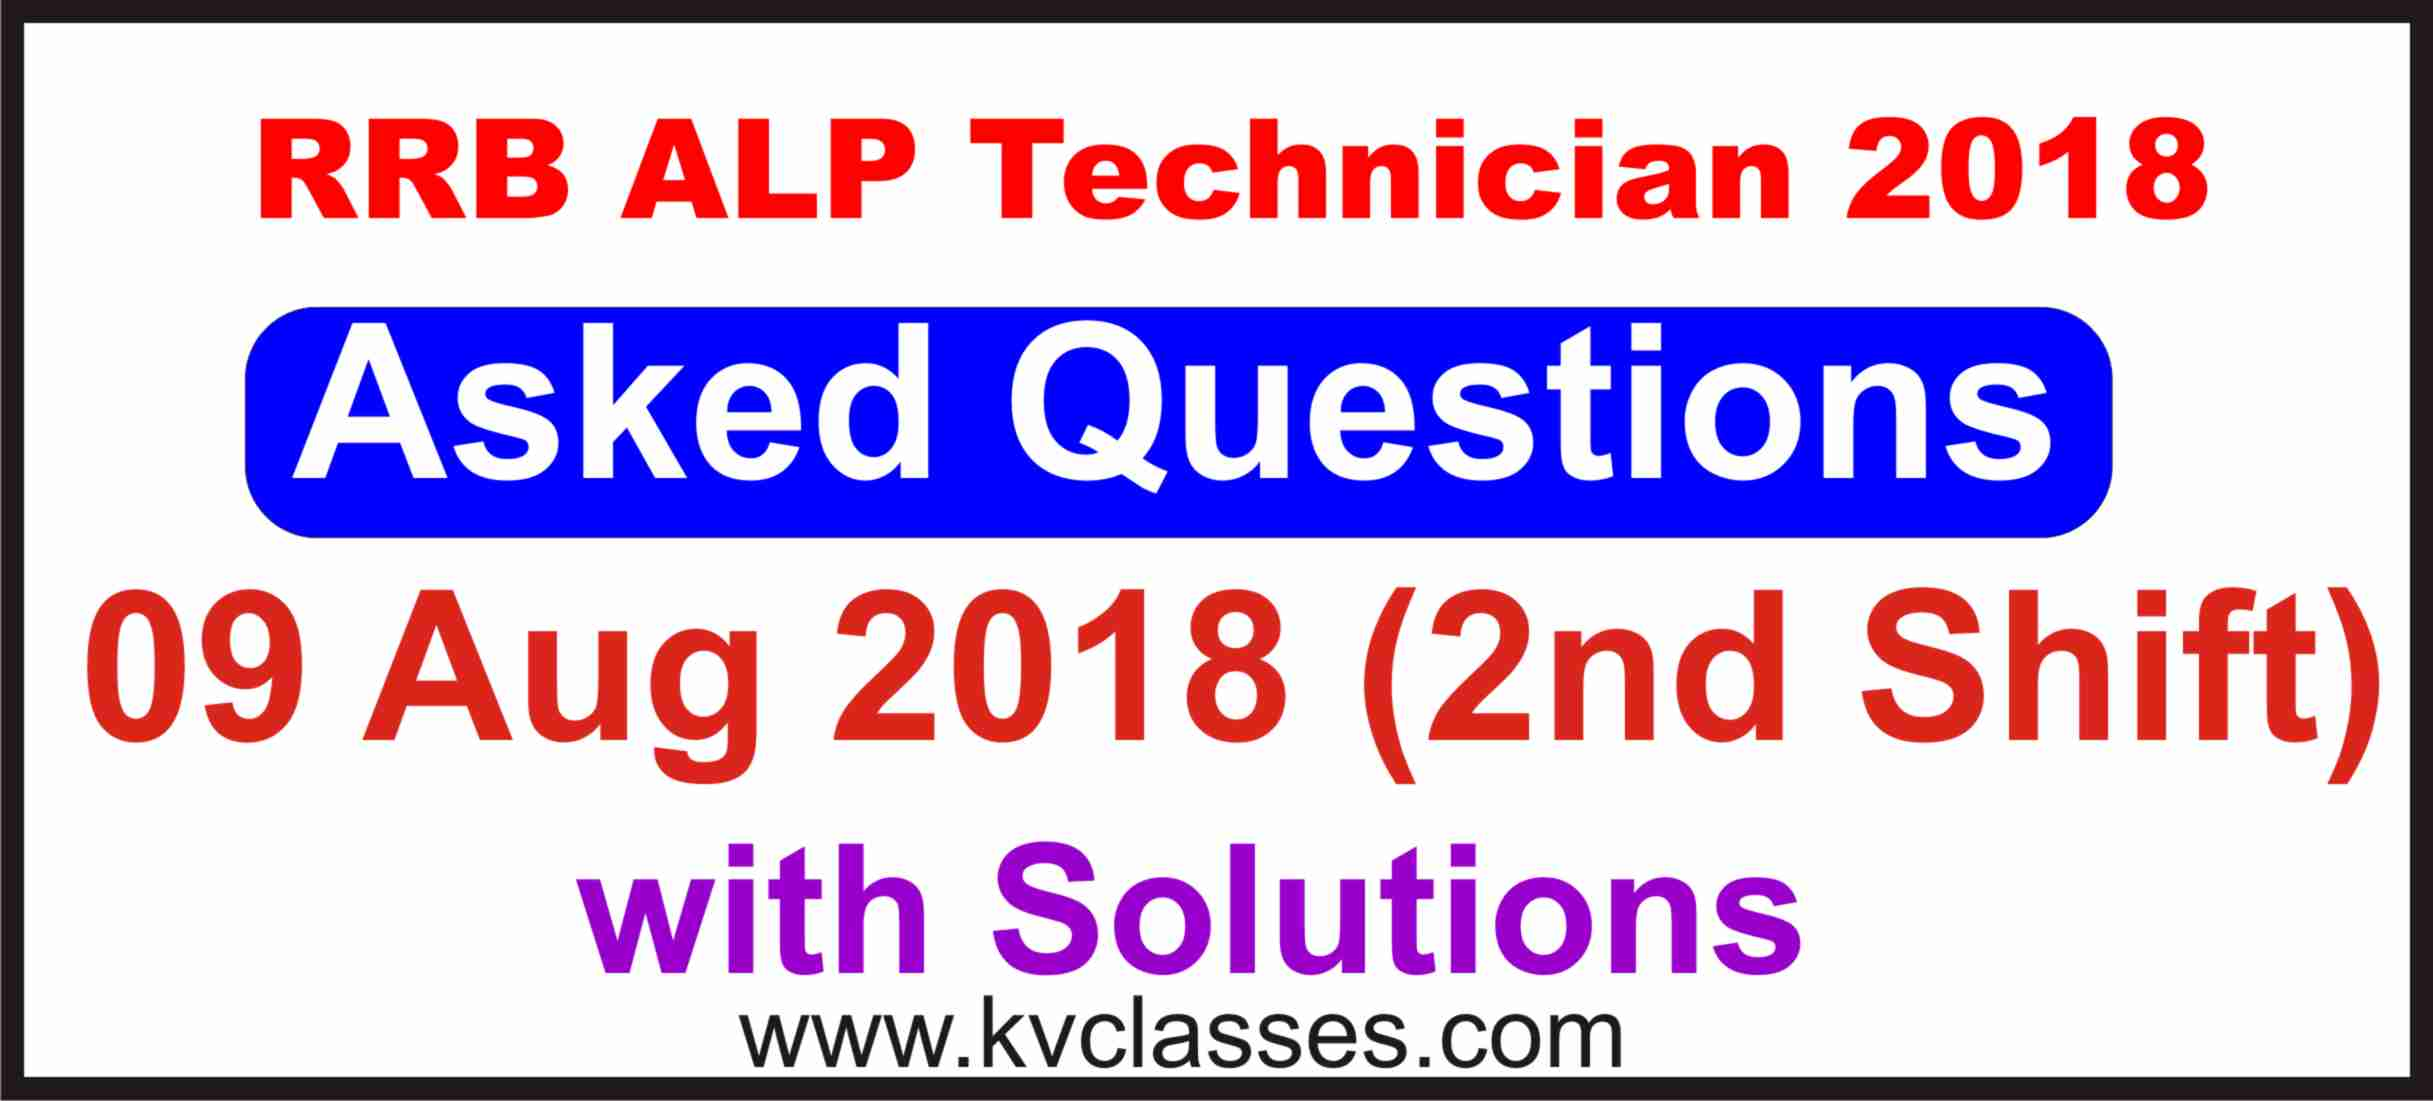 RRB ALP Technician Asked Questions 2nd Shift (9 Aug 2018)